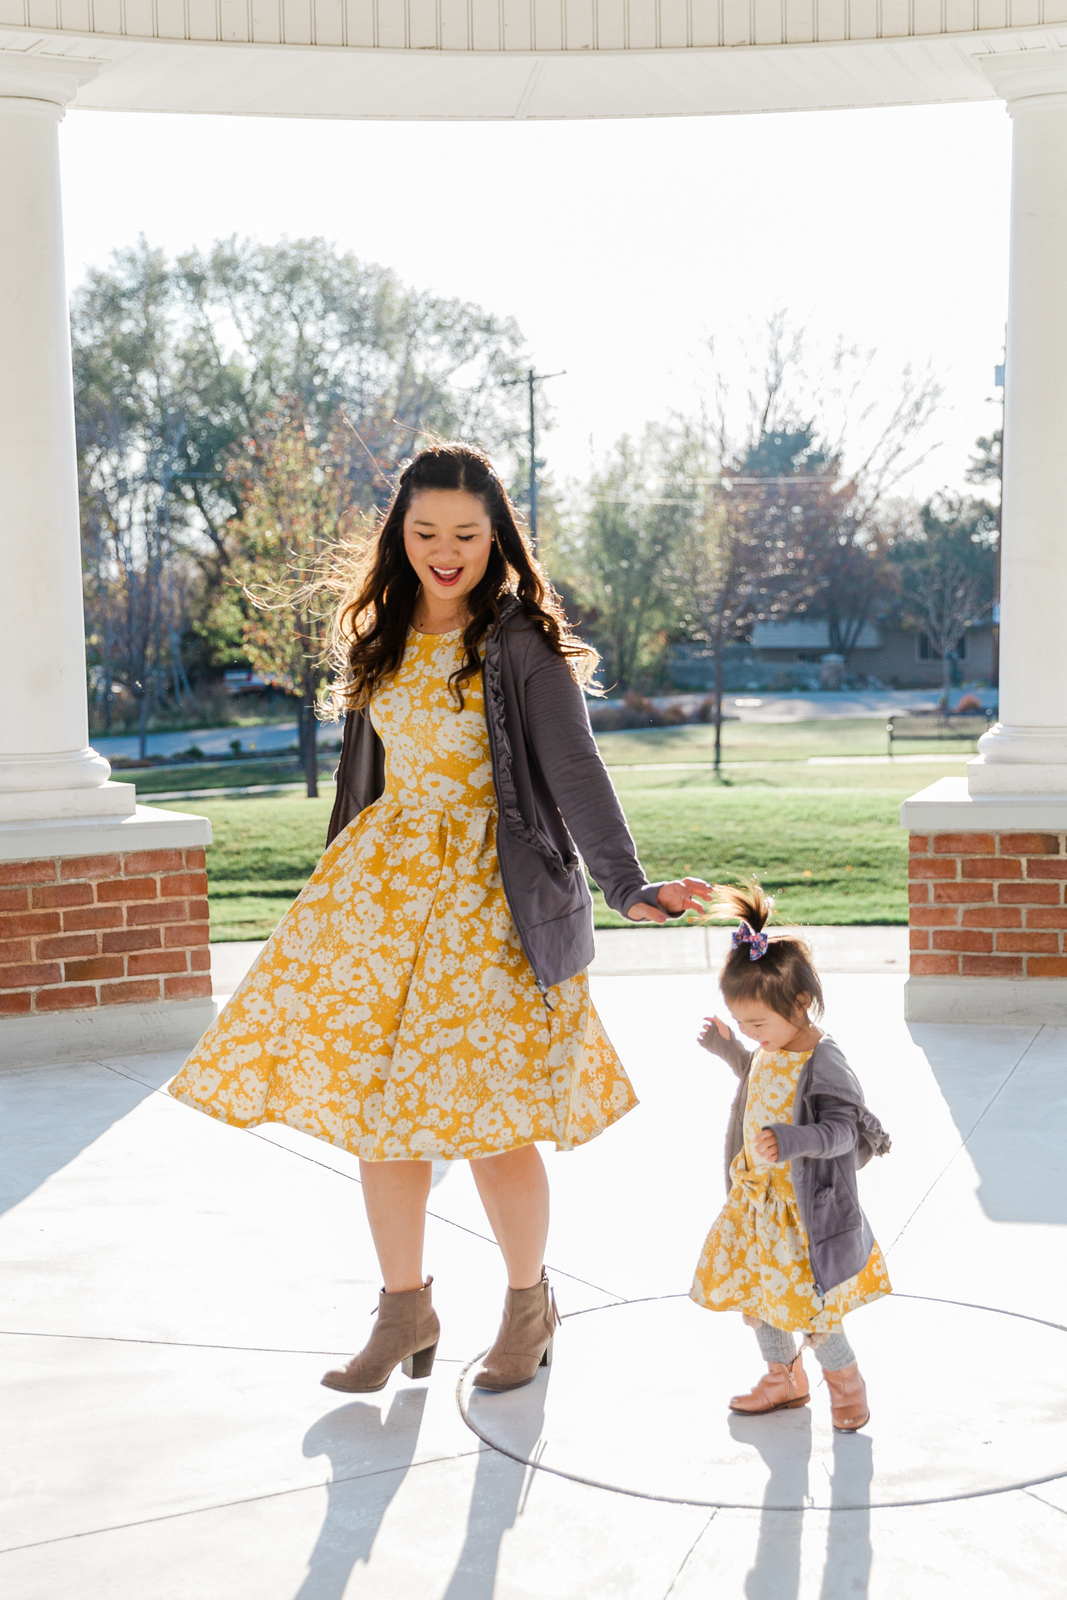 524a1b7119ed Evy s Tree Brilla in Slate Pin this image on Pinterest. JUNIEblake yellow  floral dresses ...